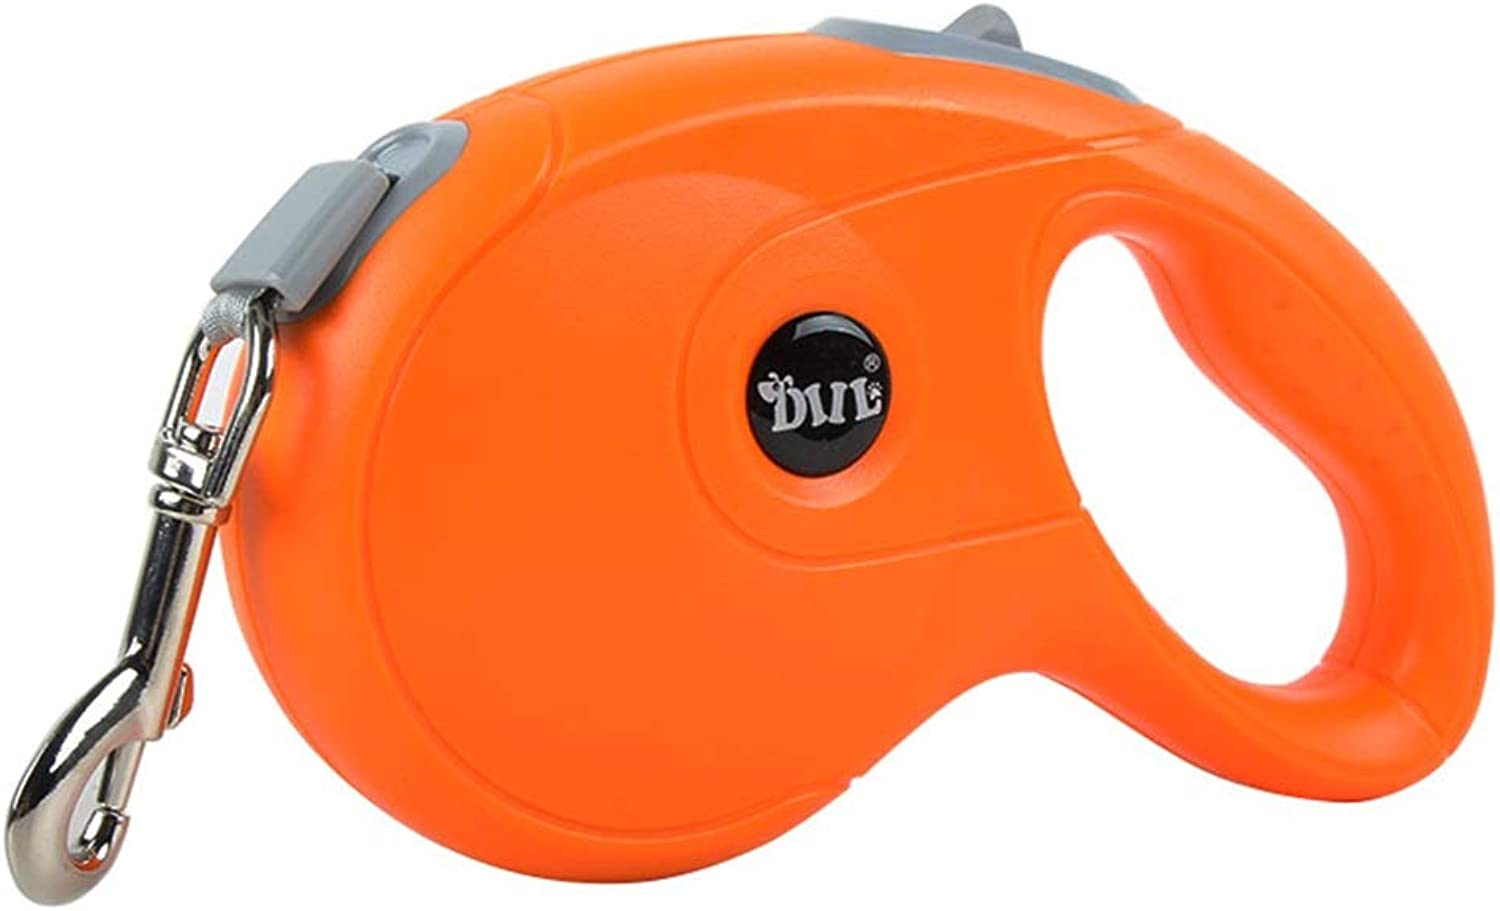 Retractable Dog Leash, One Button Control Traction Rope, Durable 10ft  16ft Dog Walking Leash for Small Medium Large Dogs,Tangle Free (orange)